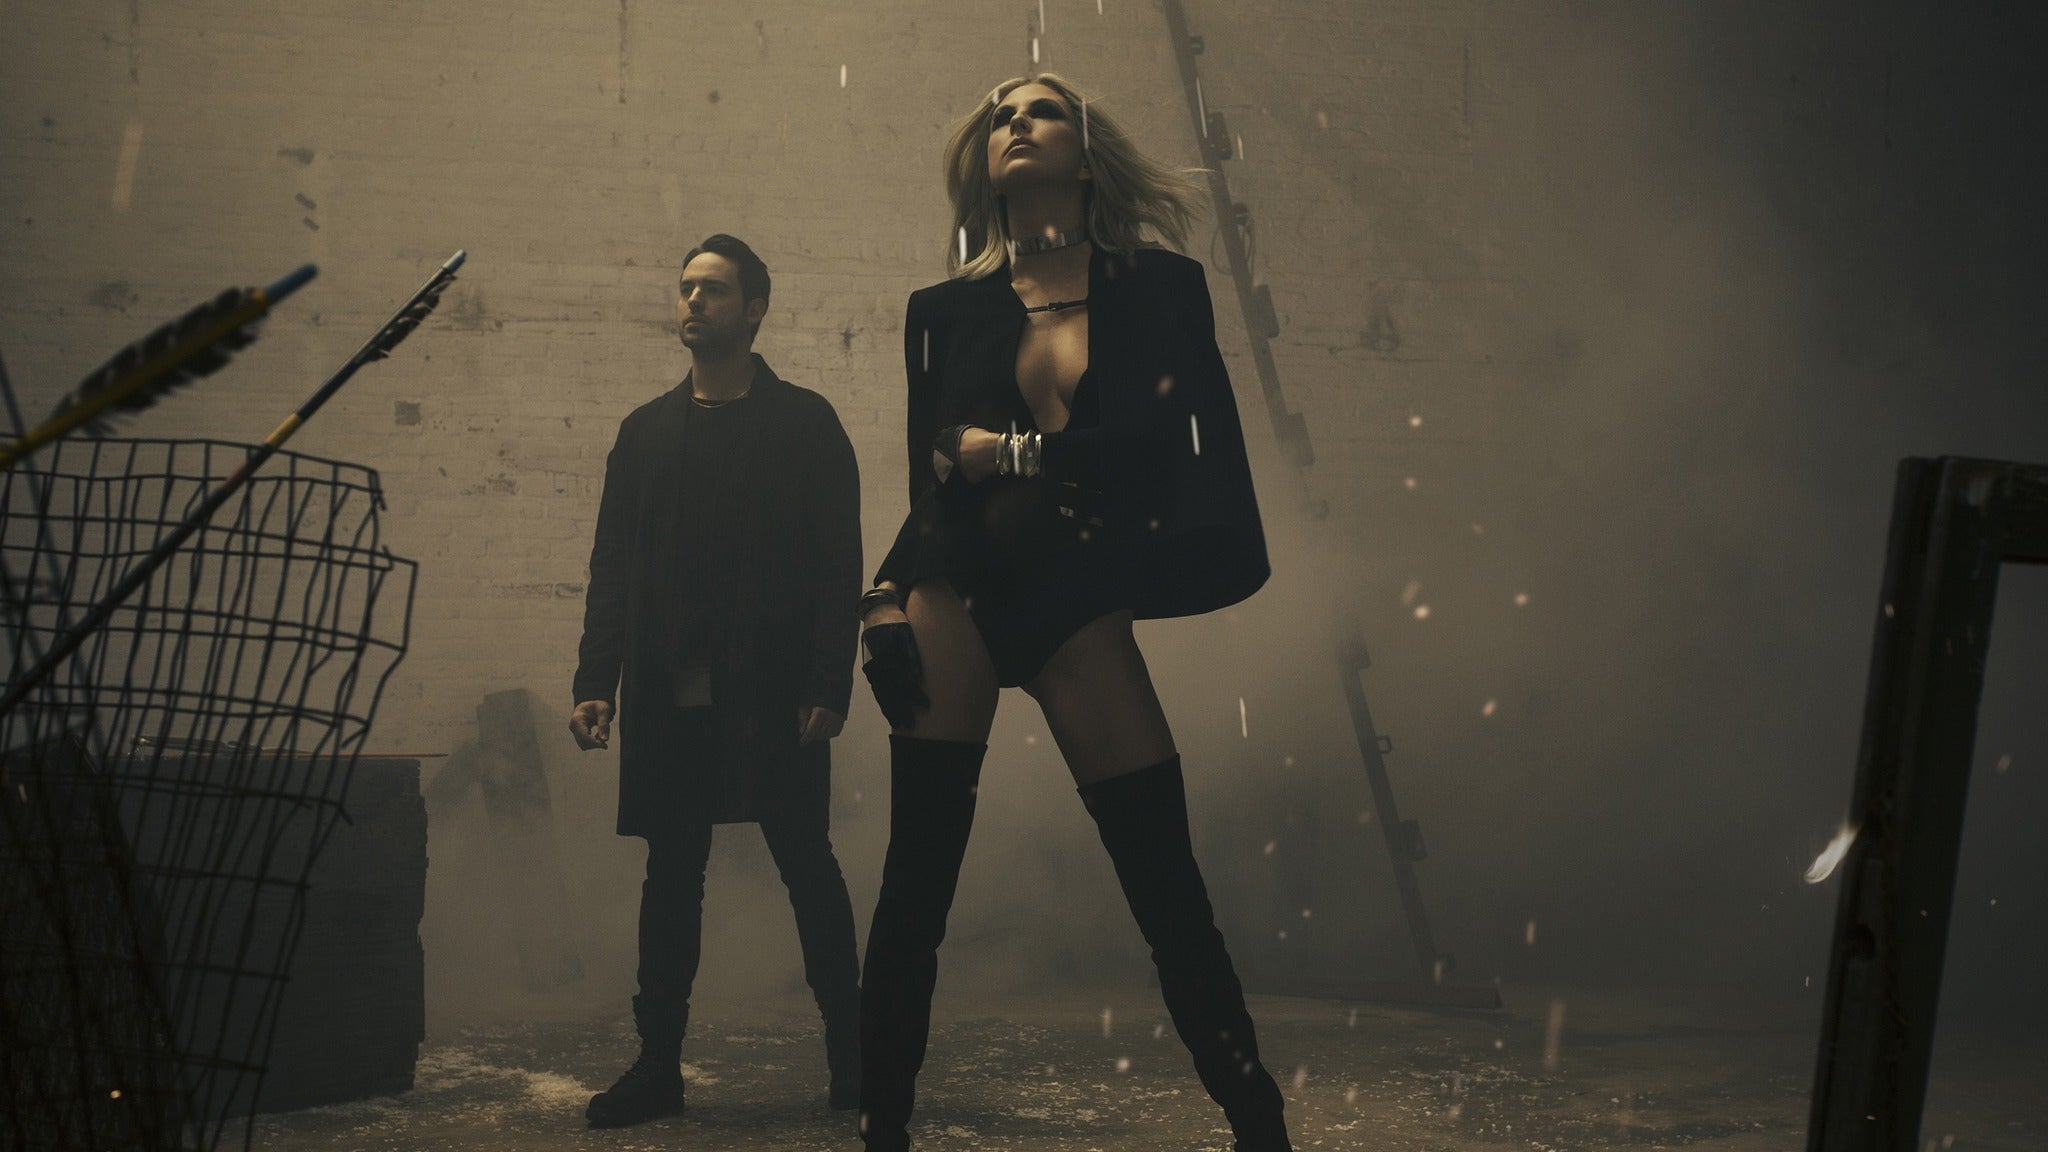 SORRY, THIS EVENT IS NO LONGER ACTIVE<br>Phantogram at Buckhead Theatre - Atlanta, GA 30305